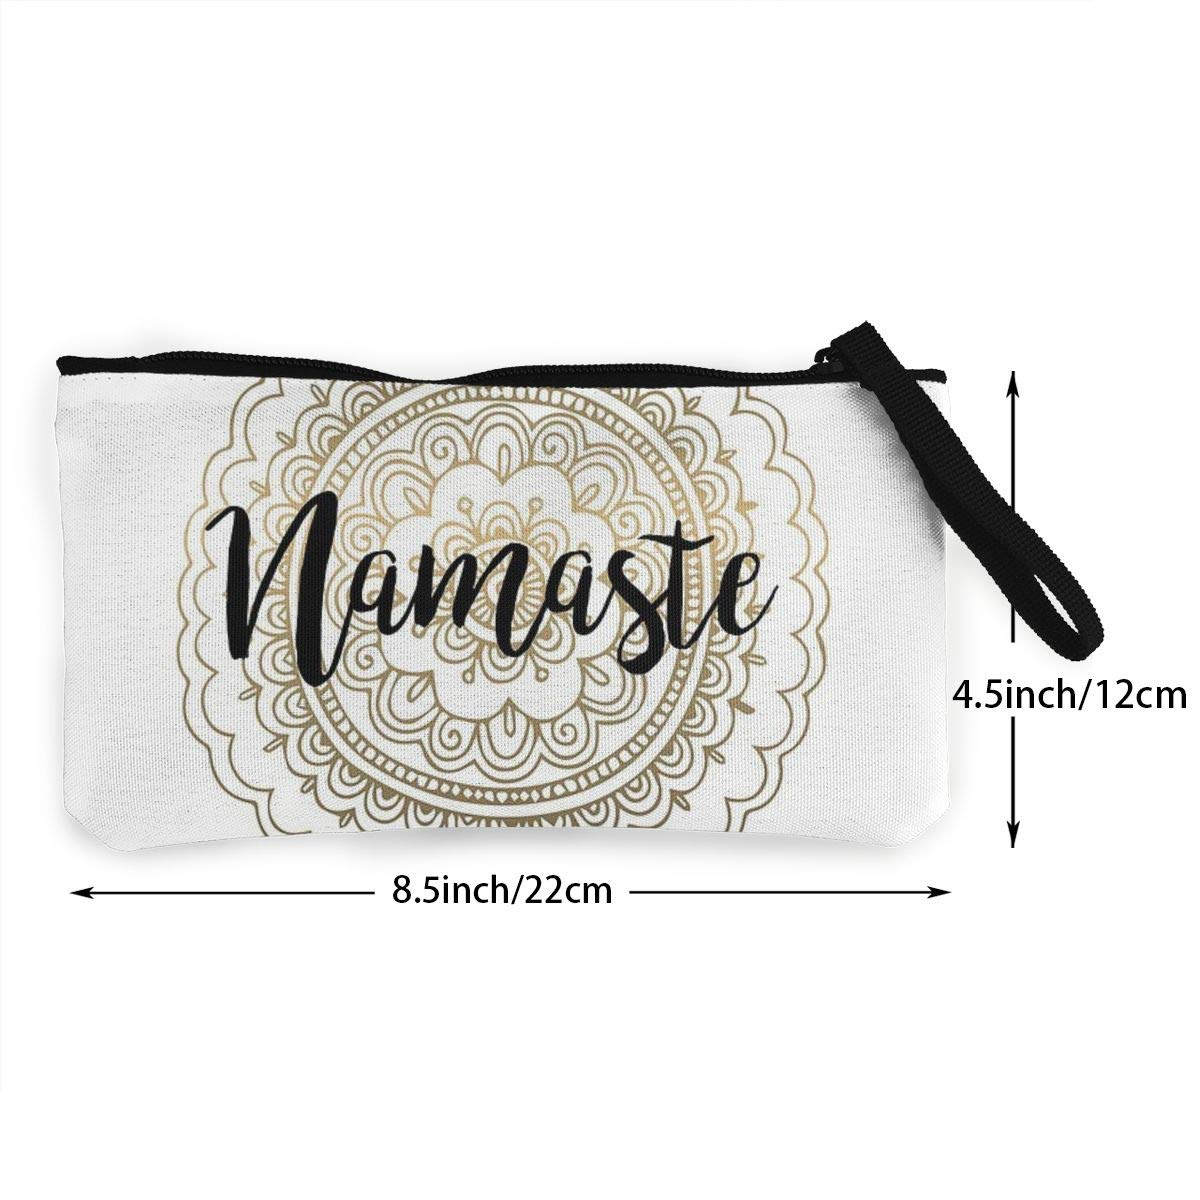 Yamini Namaste Cute Looking Coin Purse Small and Exquisite Going Out to Carry Purse